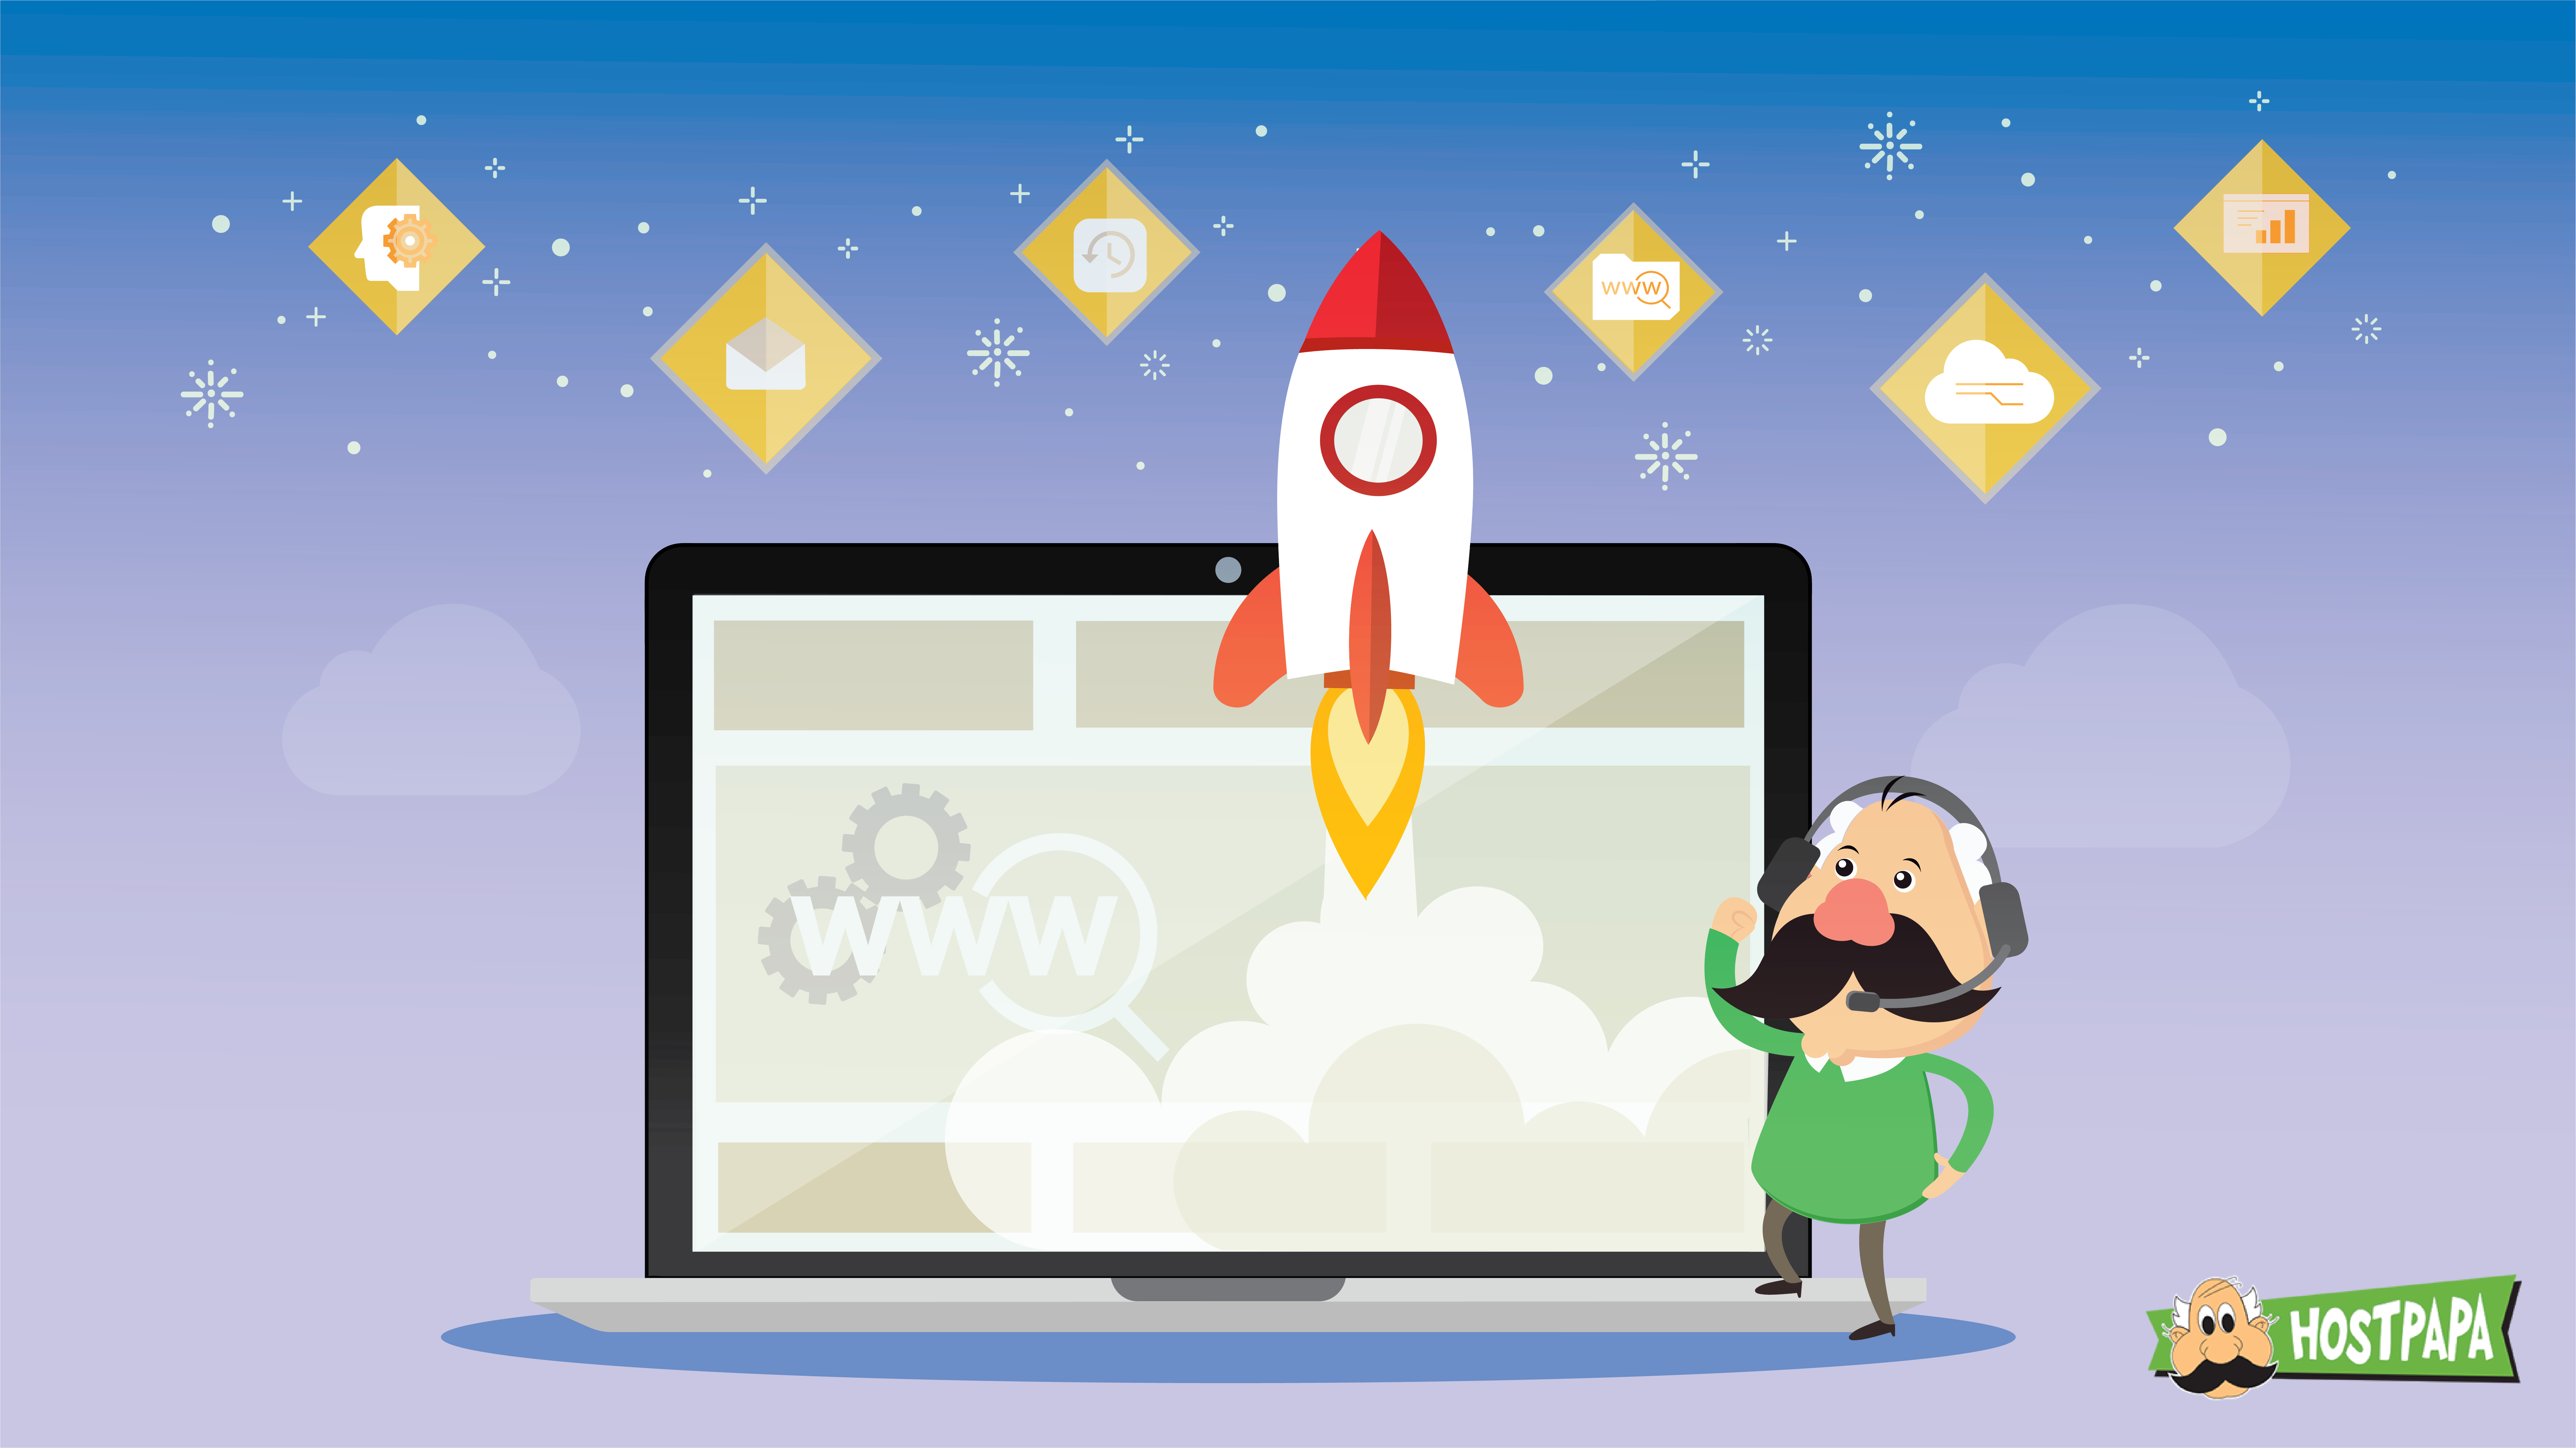 How to Launch Your Own Website Without Any Skills